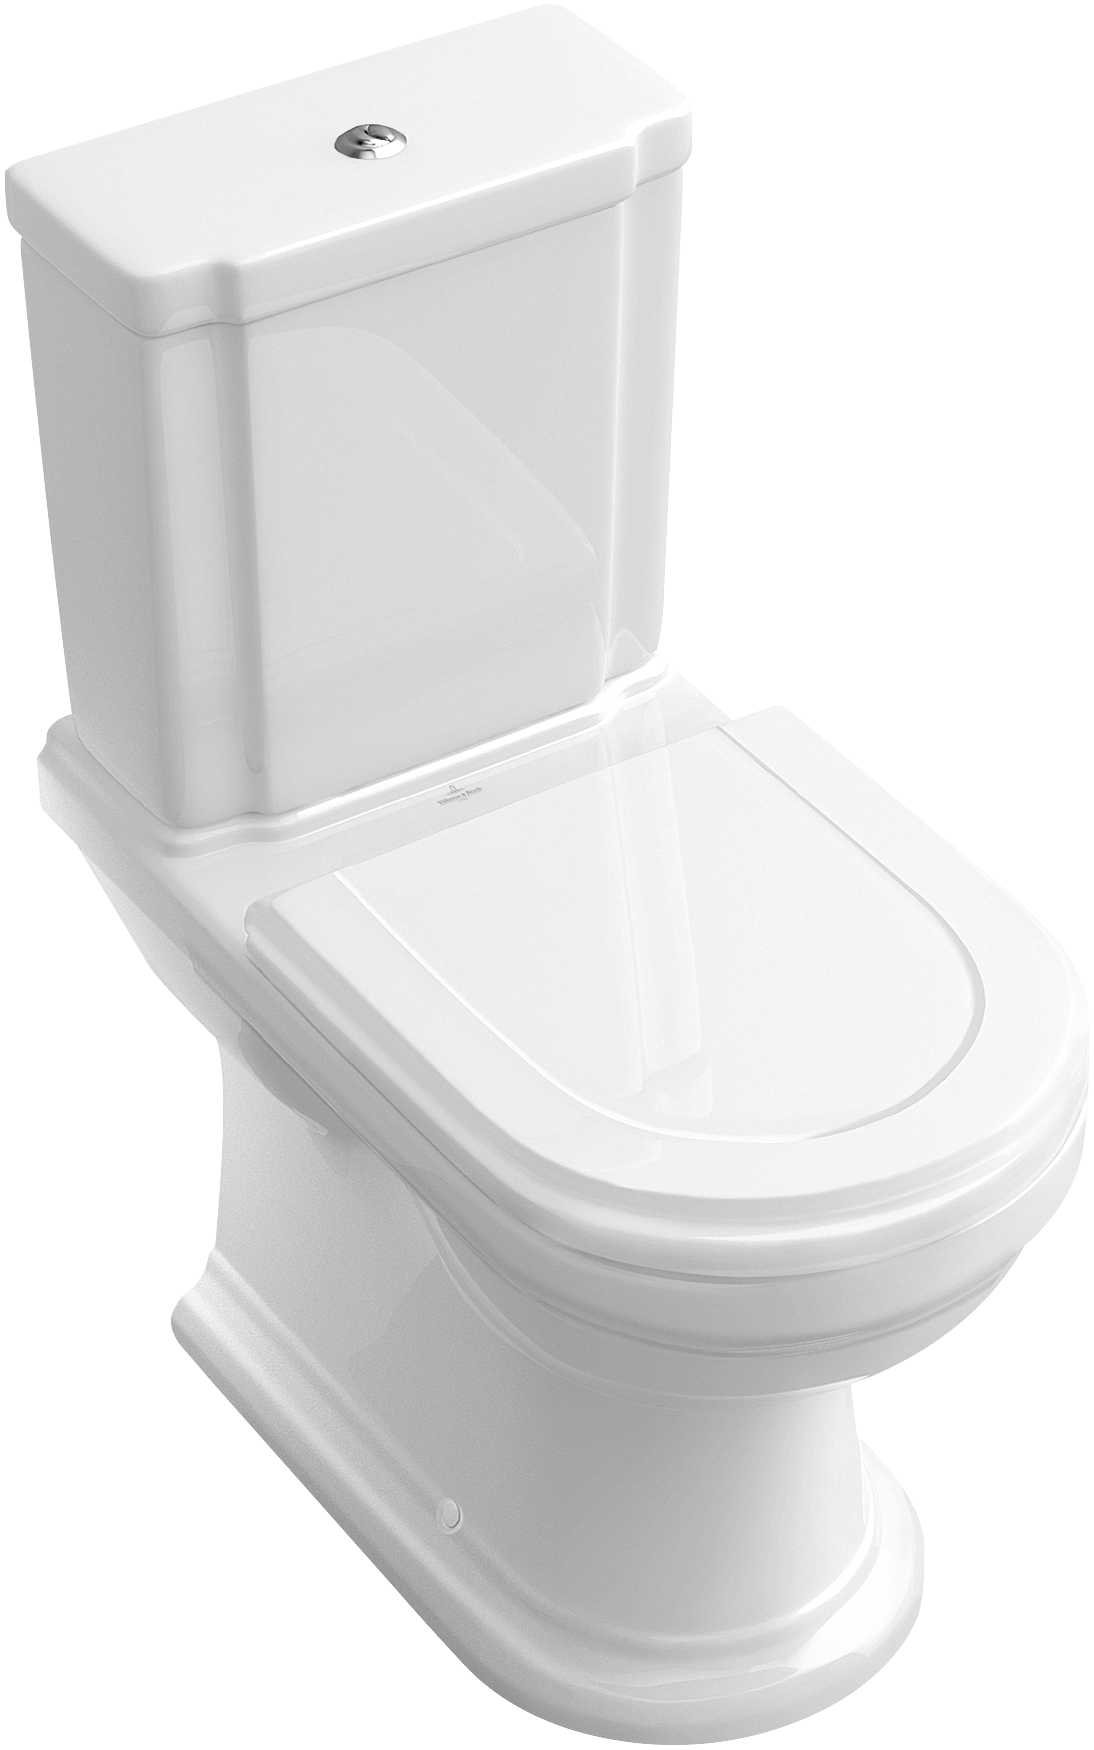 Hommage Floor standing close coupled WC suites. WCs  Villeroy   Boch